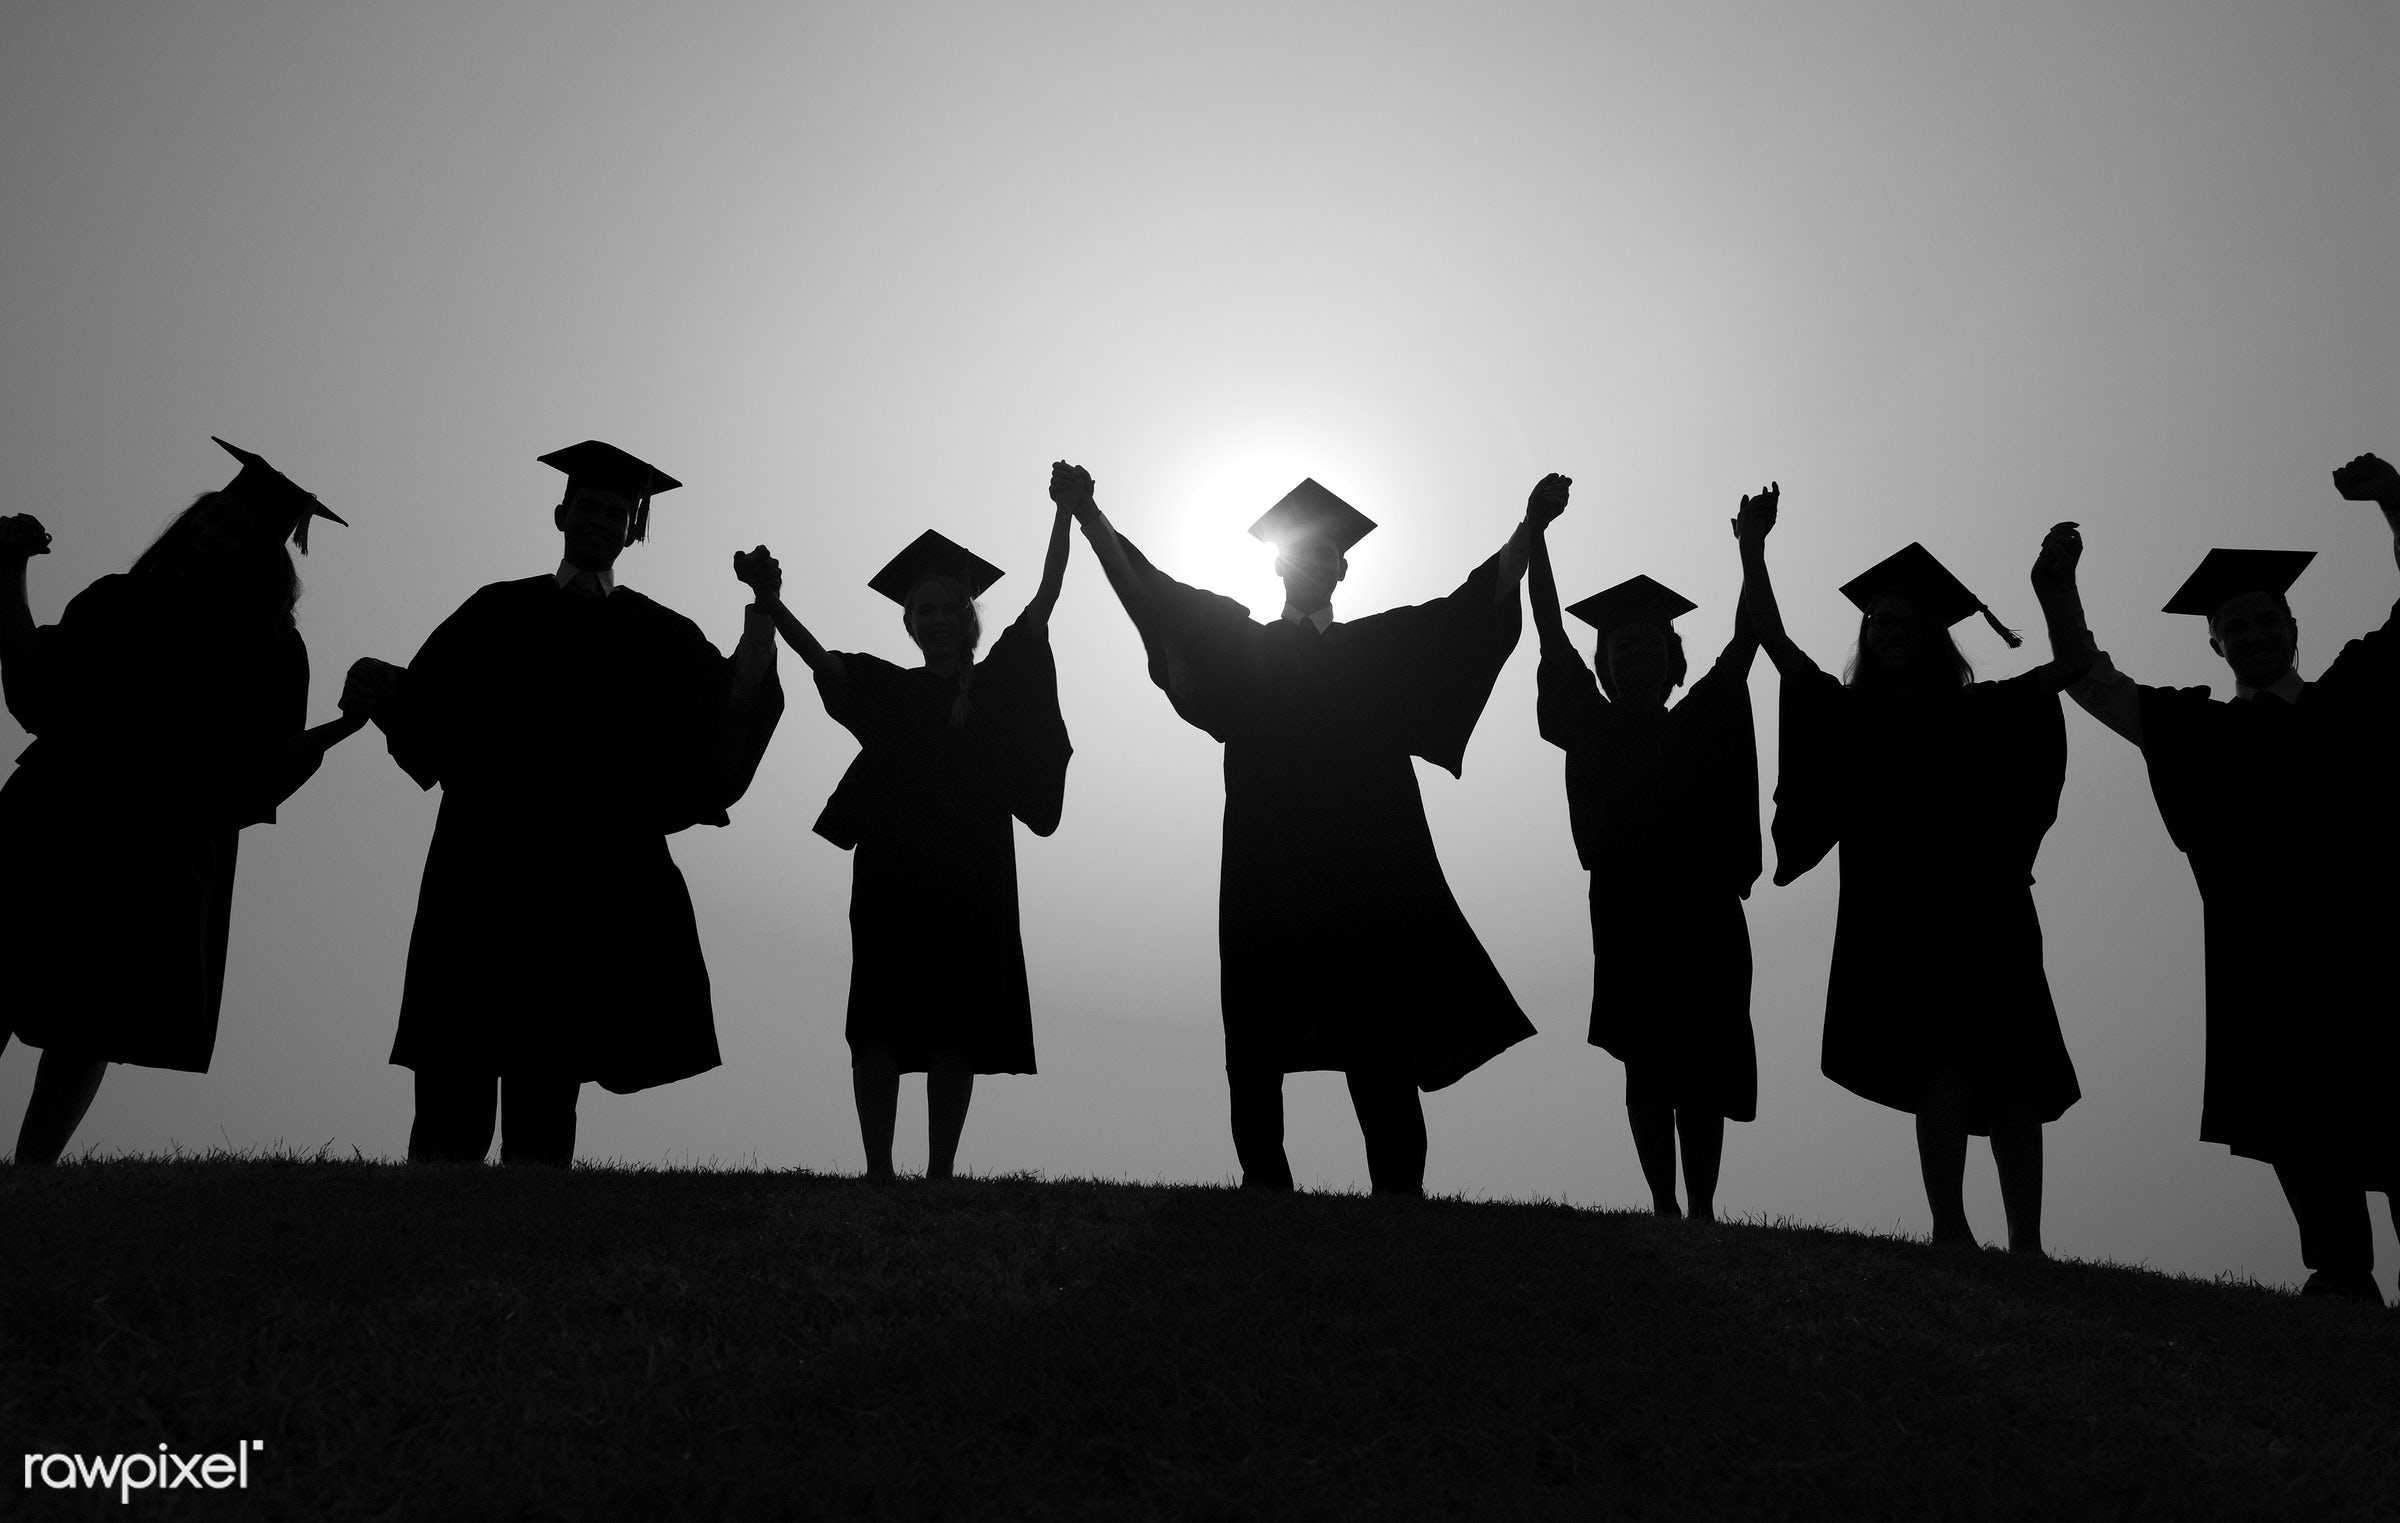 celebration event, hat, achievement, adult, arms outstretched, arms raised, celebration, ceremony, cheerful, college student...